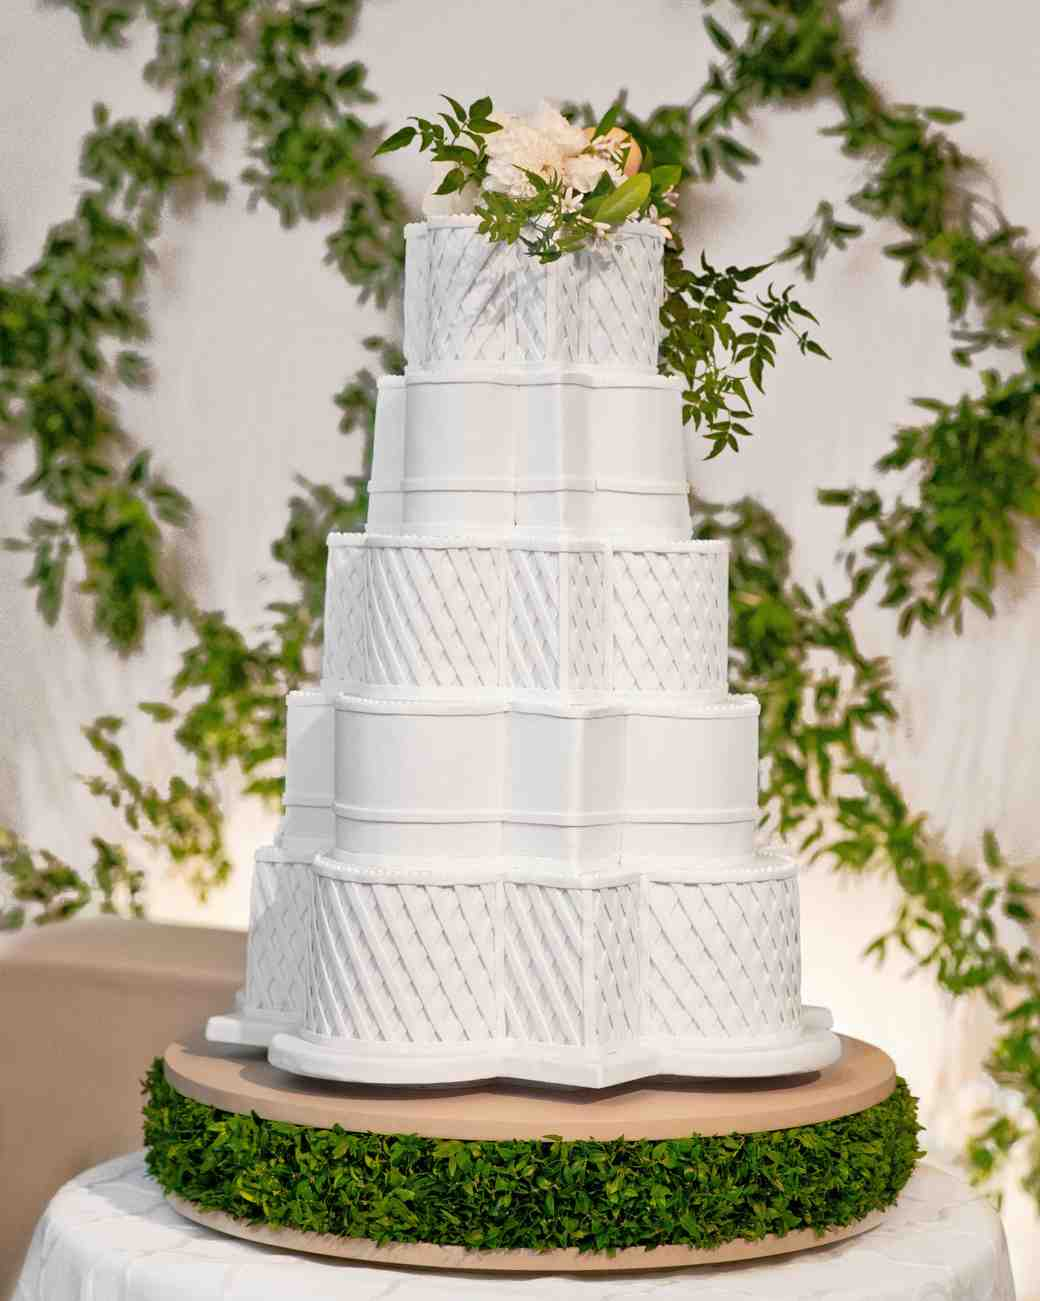 White Wedding Cake with Lattice Fondant and Floral Cake Topper